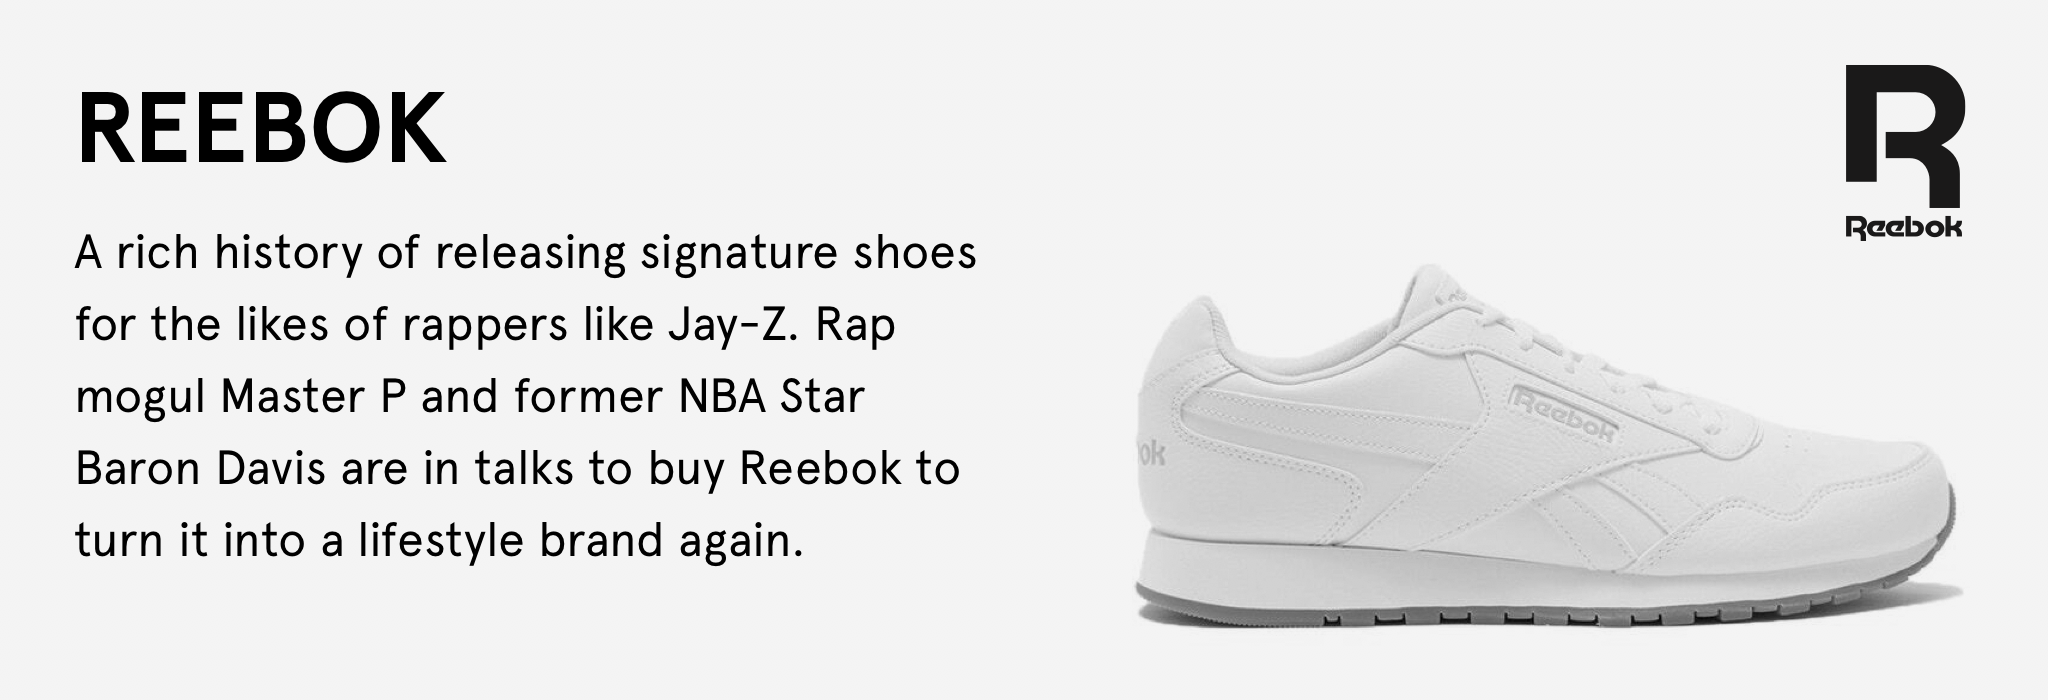 A rich history of releasing signature shoes for the likes of rappers like Jay-Z. Rap mogul Master P and former NBA Star Baron Davis are in talks to buy Reebok to turn it into a lifestyle brand again.